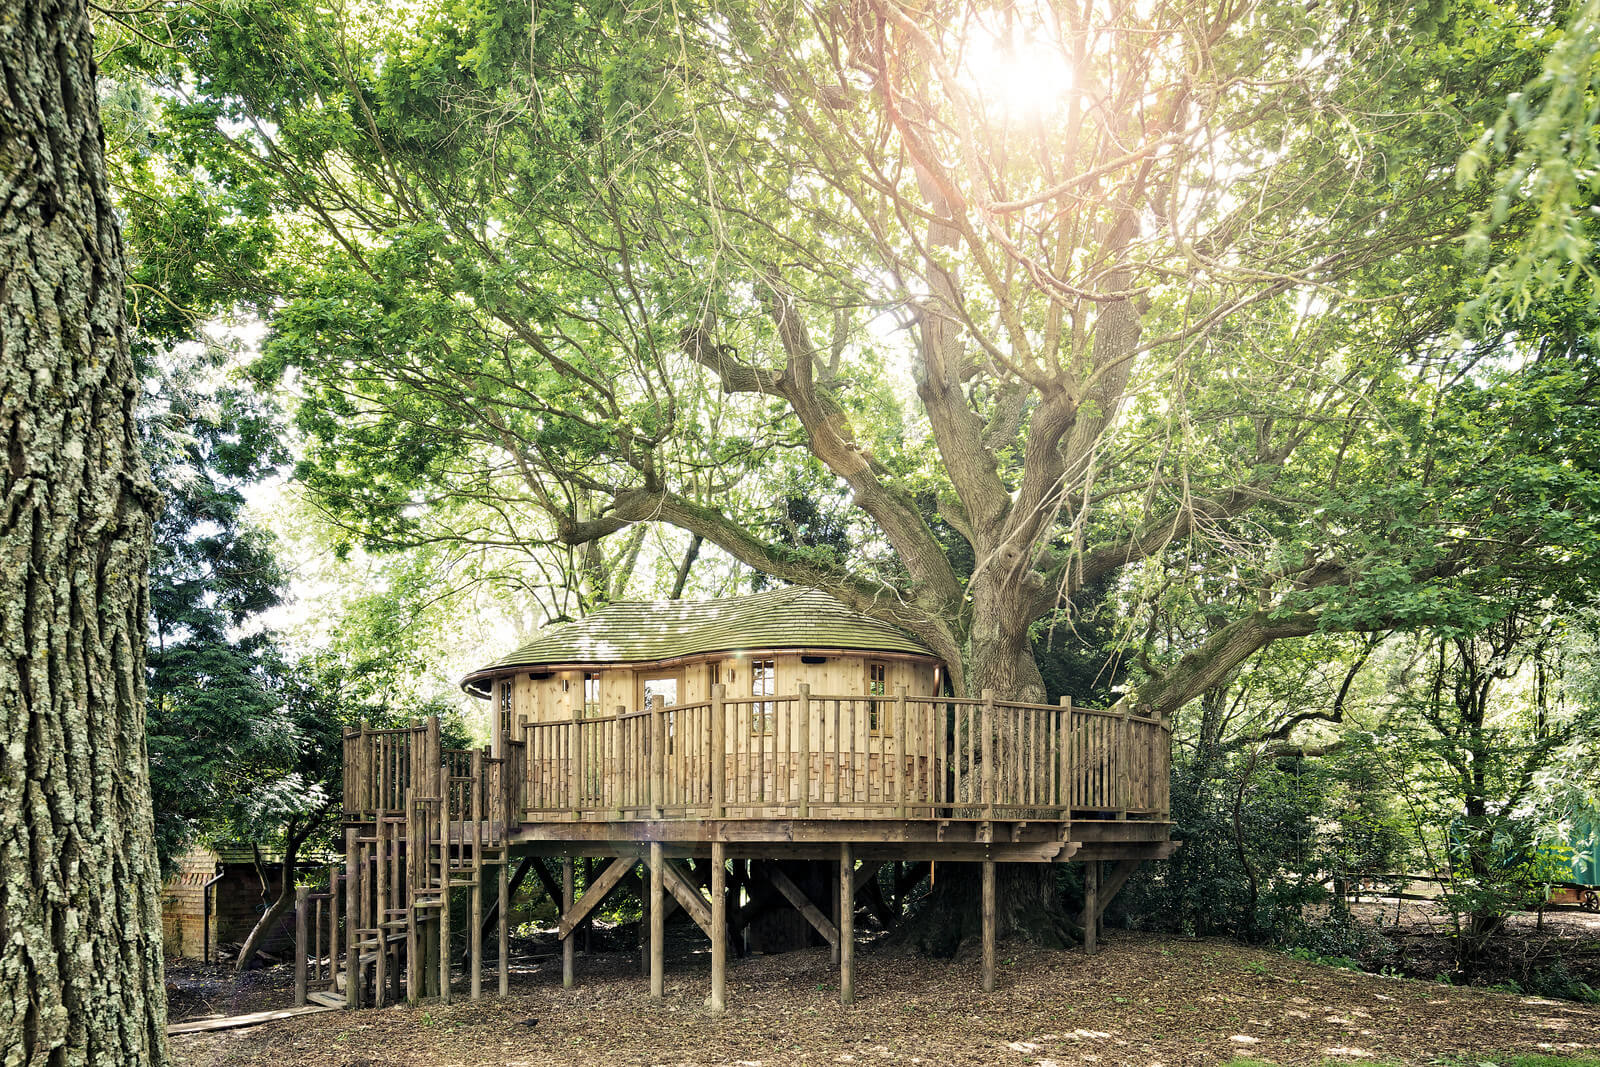 Whimsical Tree House Design For Adults This Is An Actual